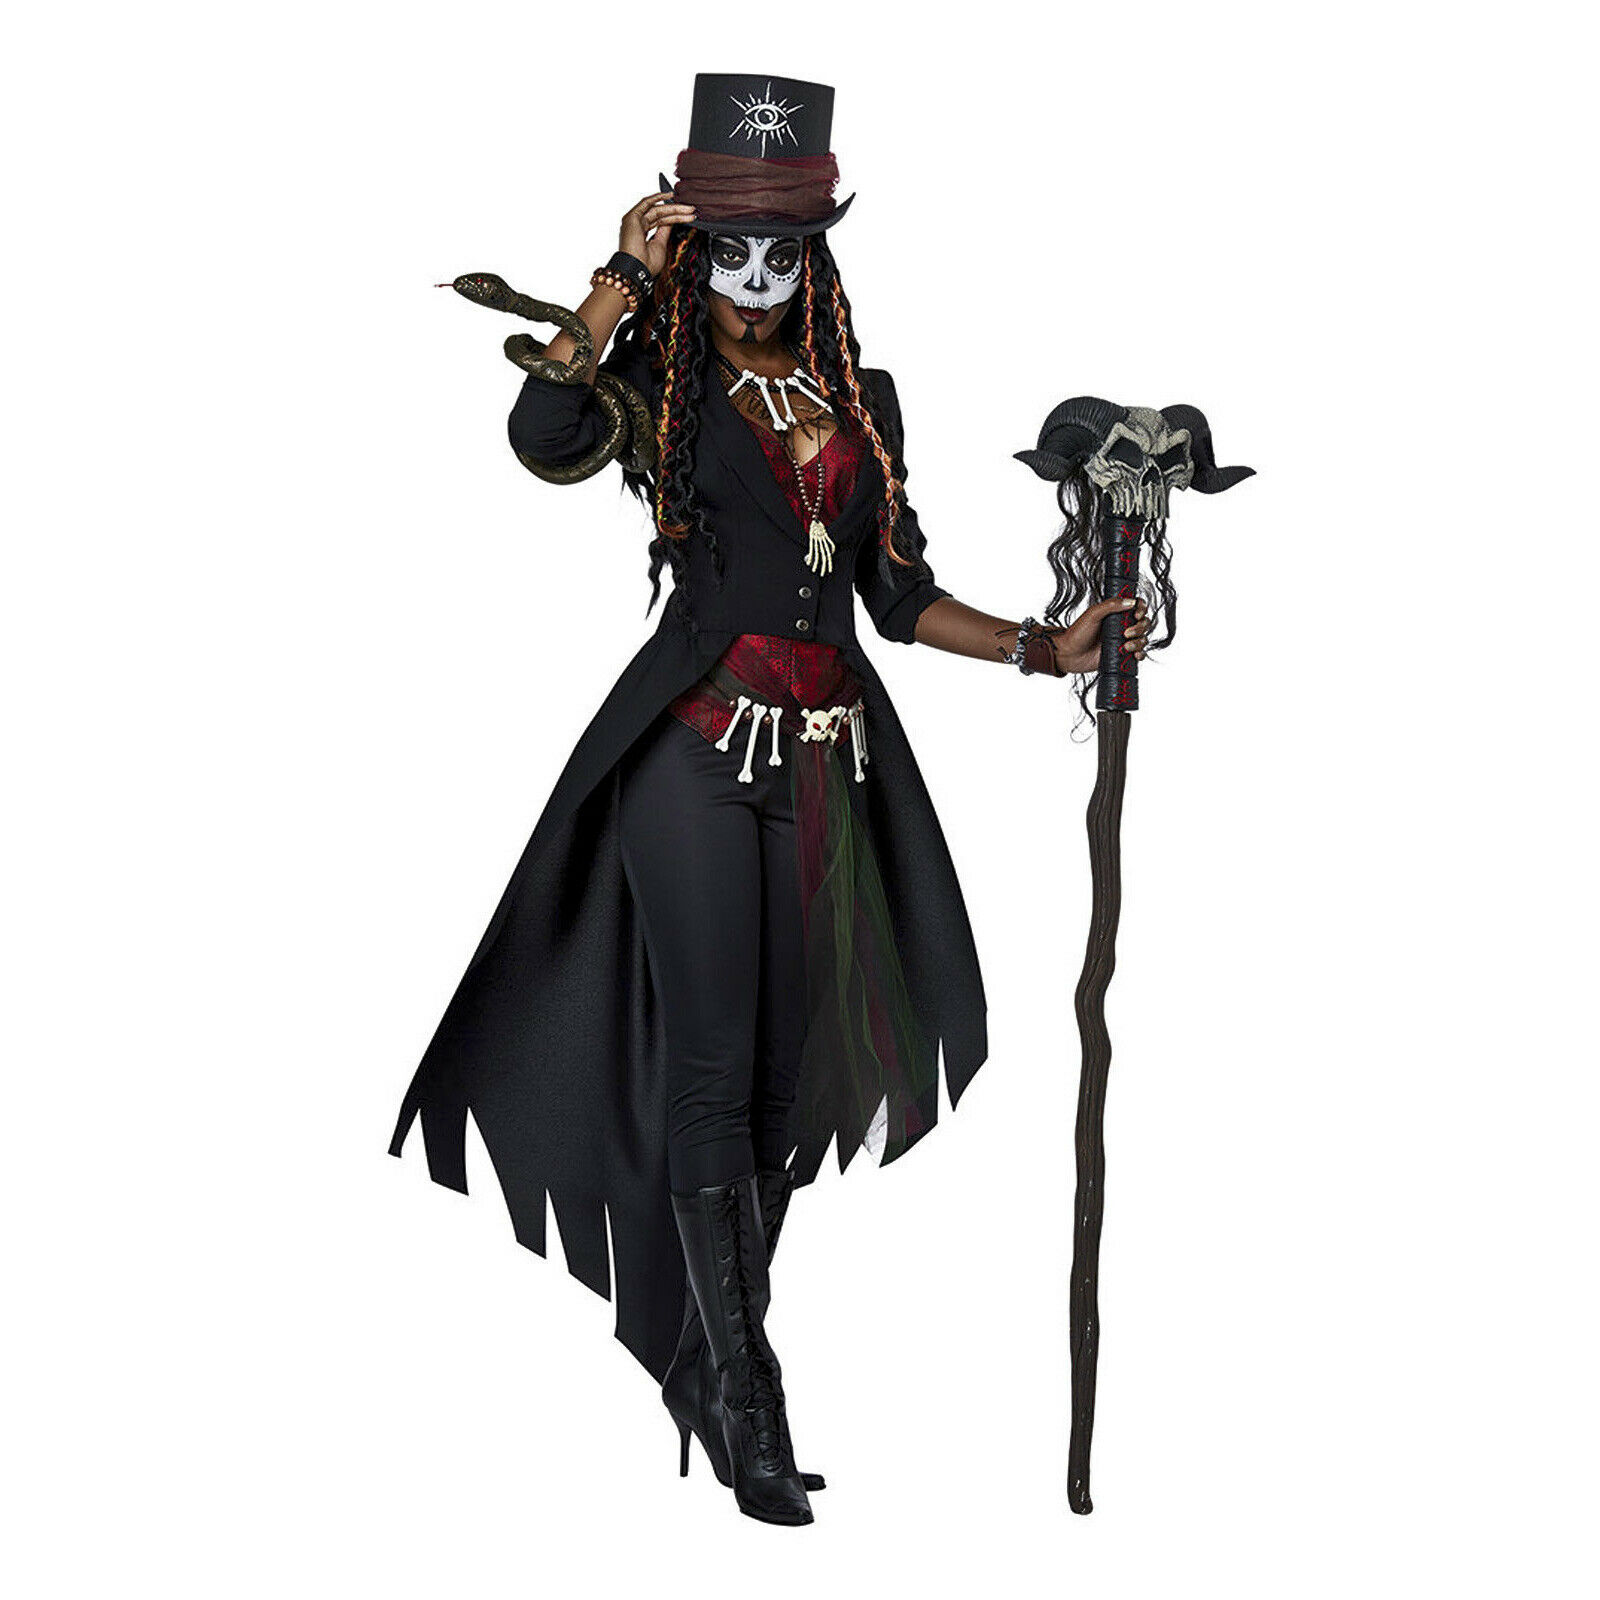 Voodoo Priestess Witch Doctor Halloween Costume Plus Size 3x For Sale Online Ebay